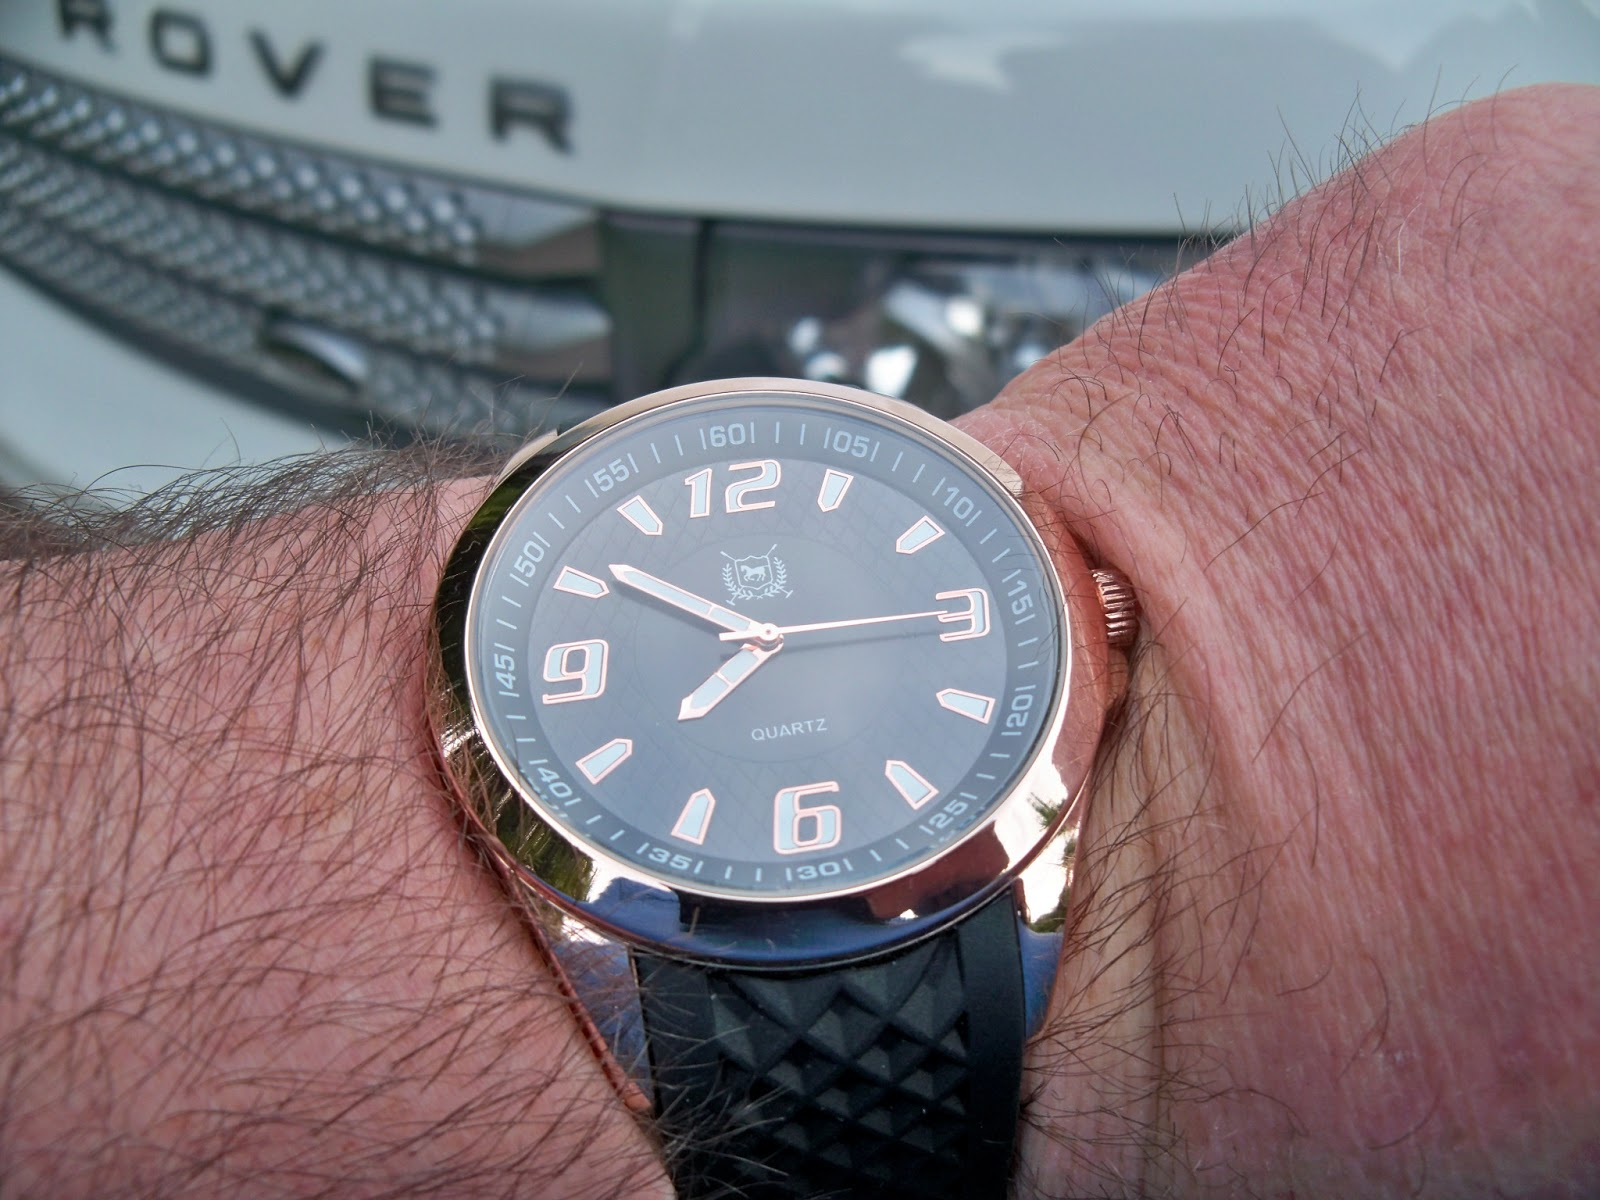 the watch dude wristwatch review thre3 mens sport watch in rose this thre3 watch looks a little classier than its 24 99 price tag it has a 12 millimeter thick base metal case a rose gold tone atop an etched